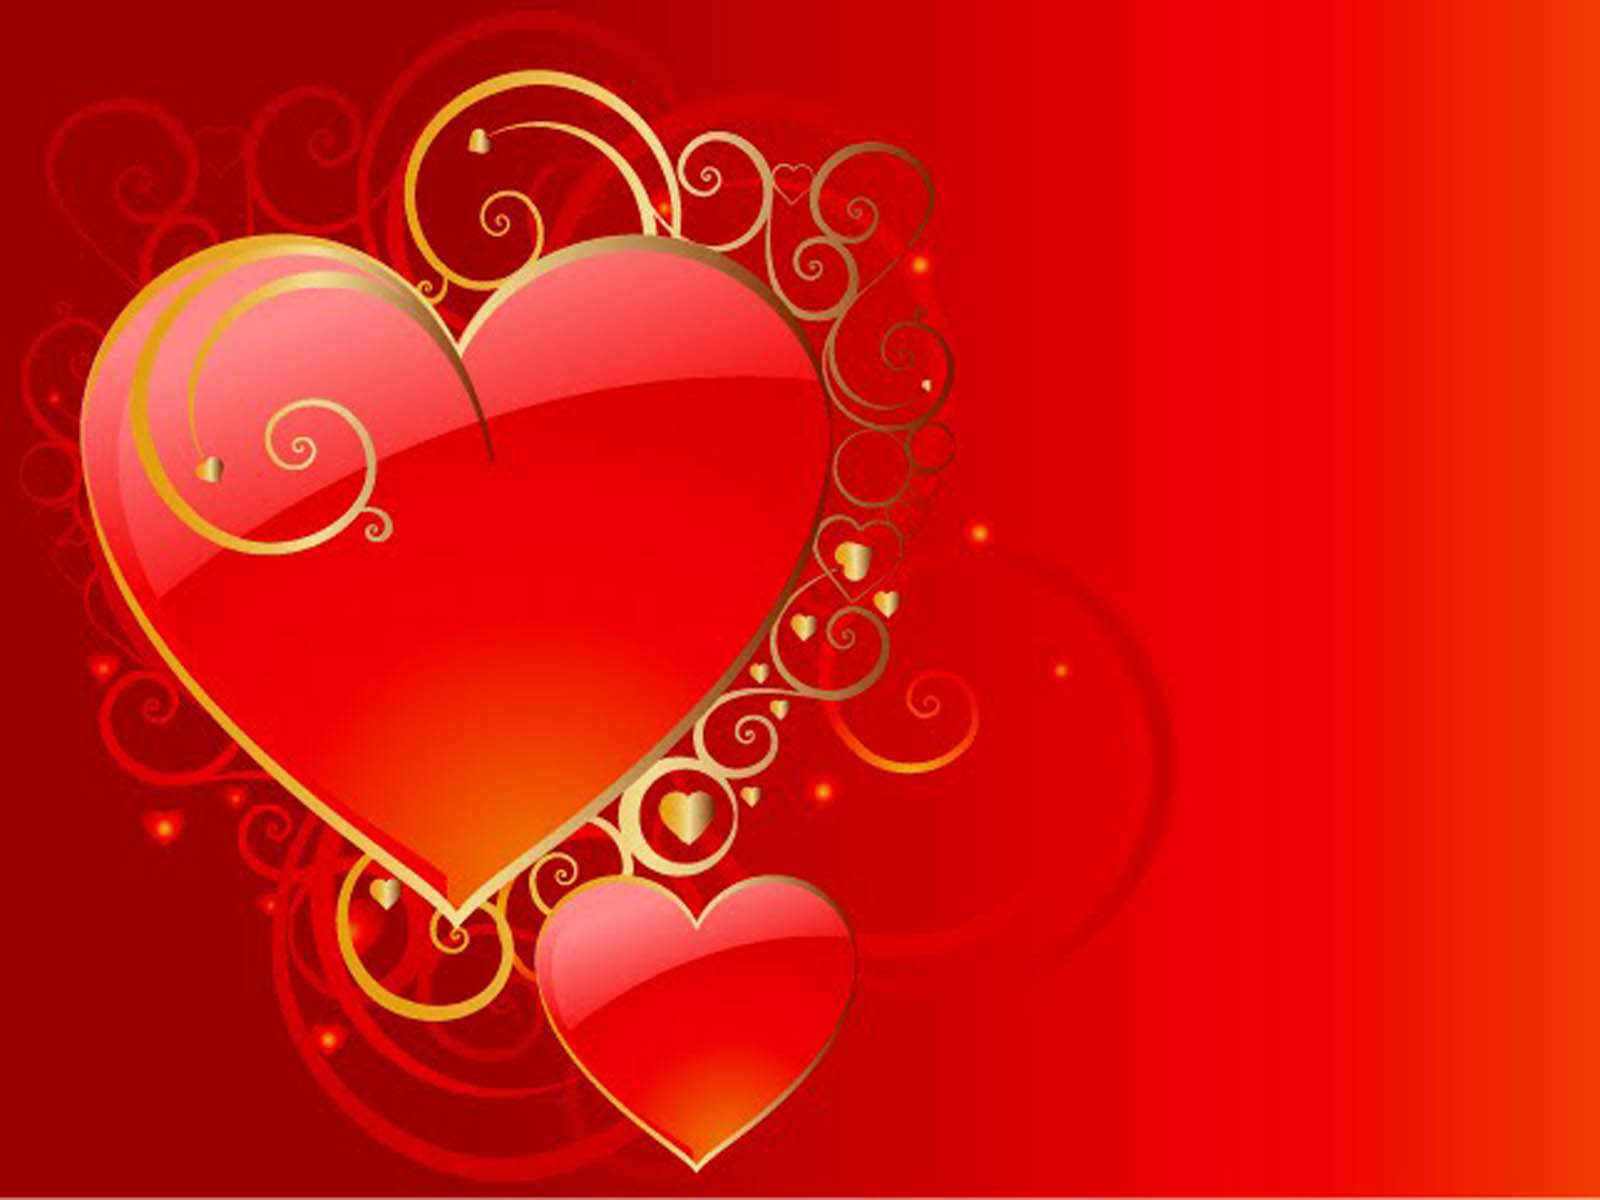 3d Heart Love Wallpapers 4852 Wallpaper: Wallpapers: Love Heart Wallpapers